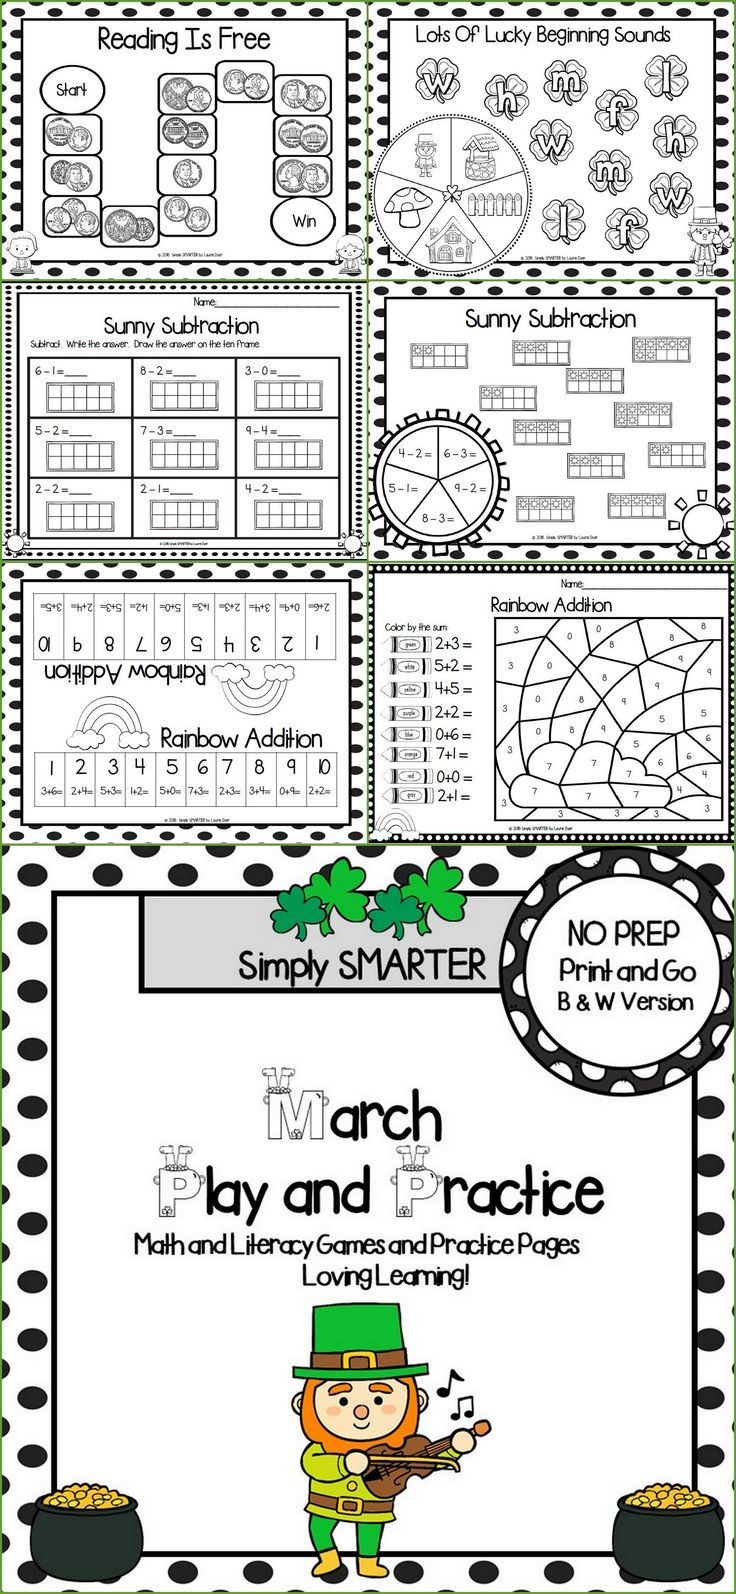 Are you looking for NO PREP math and literacy activities for preschool, kindergarten, or first grade? Then enjoy this math and literacy resource which is comprised of TEN MARCH themed BLACK AND WHITE BOARD GAMES and TEN WORKSHEETS THAT COMPLEMENT THE GAMES. The games and worksheets can be used for math centers, word work, literacy centers, early finishers, enrichment, remediation, independent work, morning work, focus lessons, and homework.